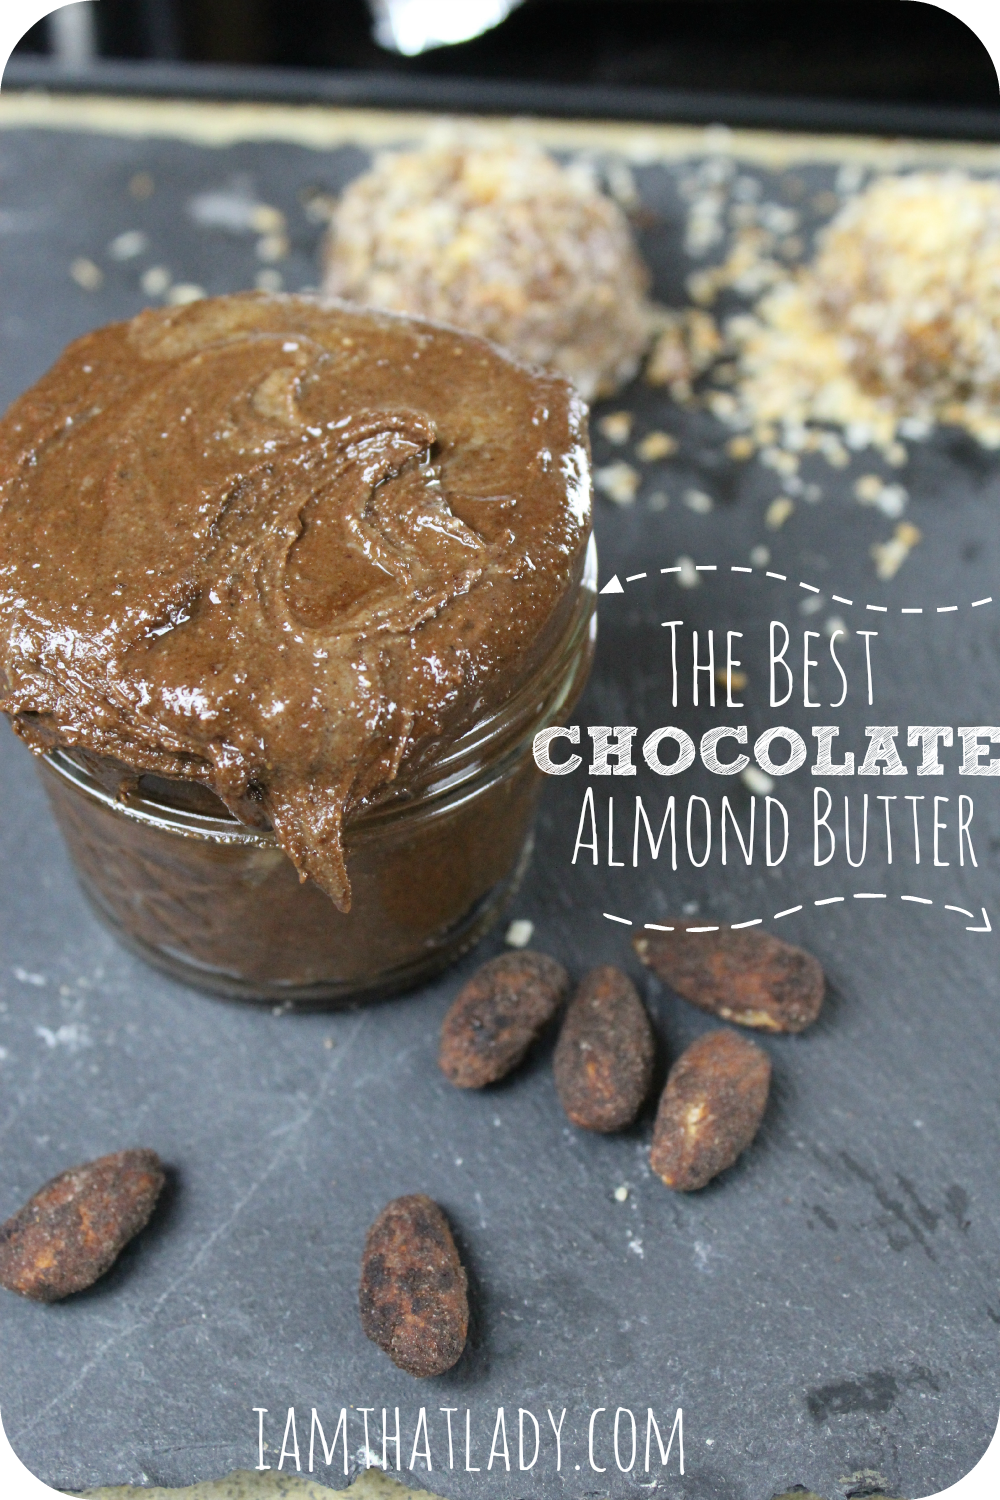 If you love Homemade Almond Butter - then you are going to love this chocolate almond butter recipe. I love dipping apples in this - it ads just a little more sweetness! This recipe is quick and easy too!